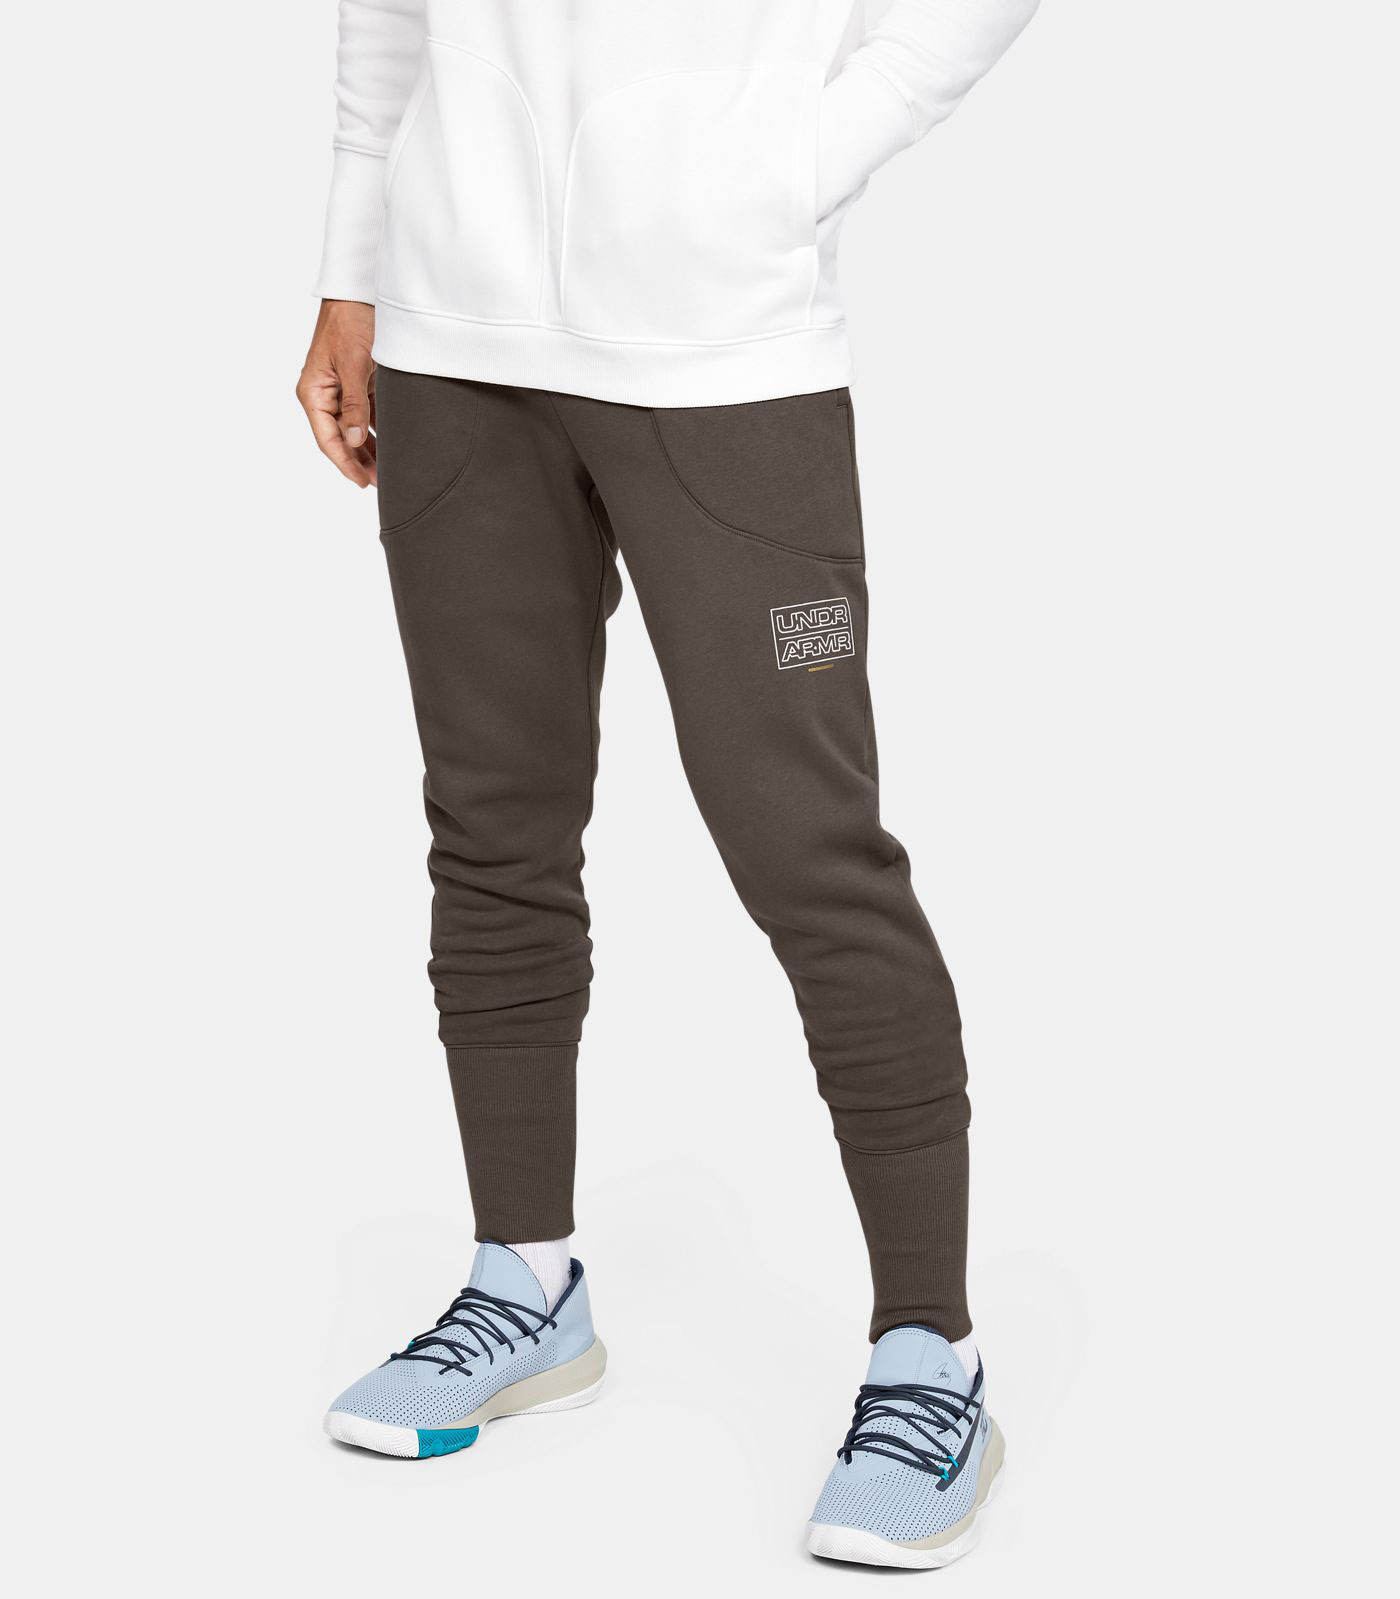 curry-7-our-history-matching-jogger-pants